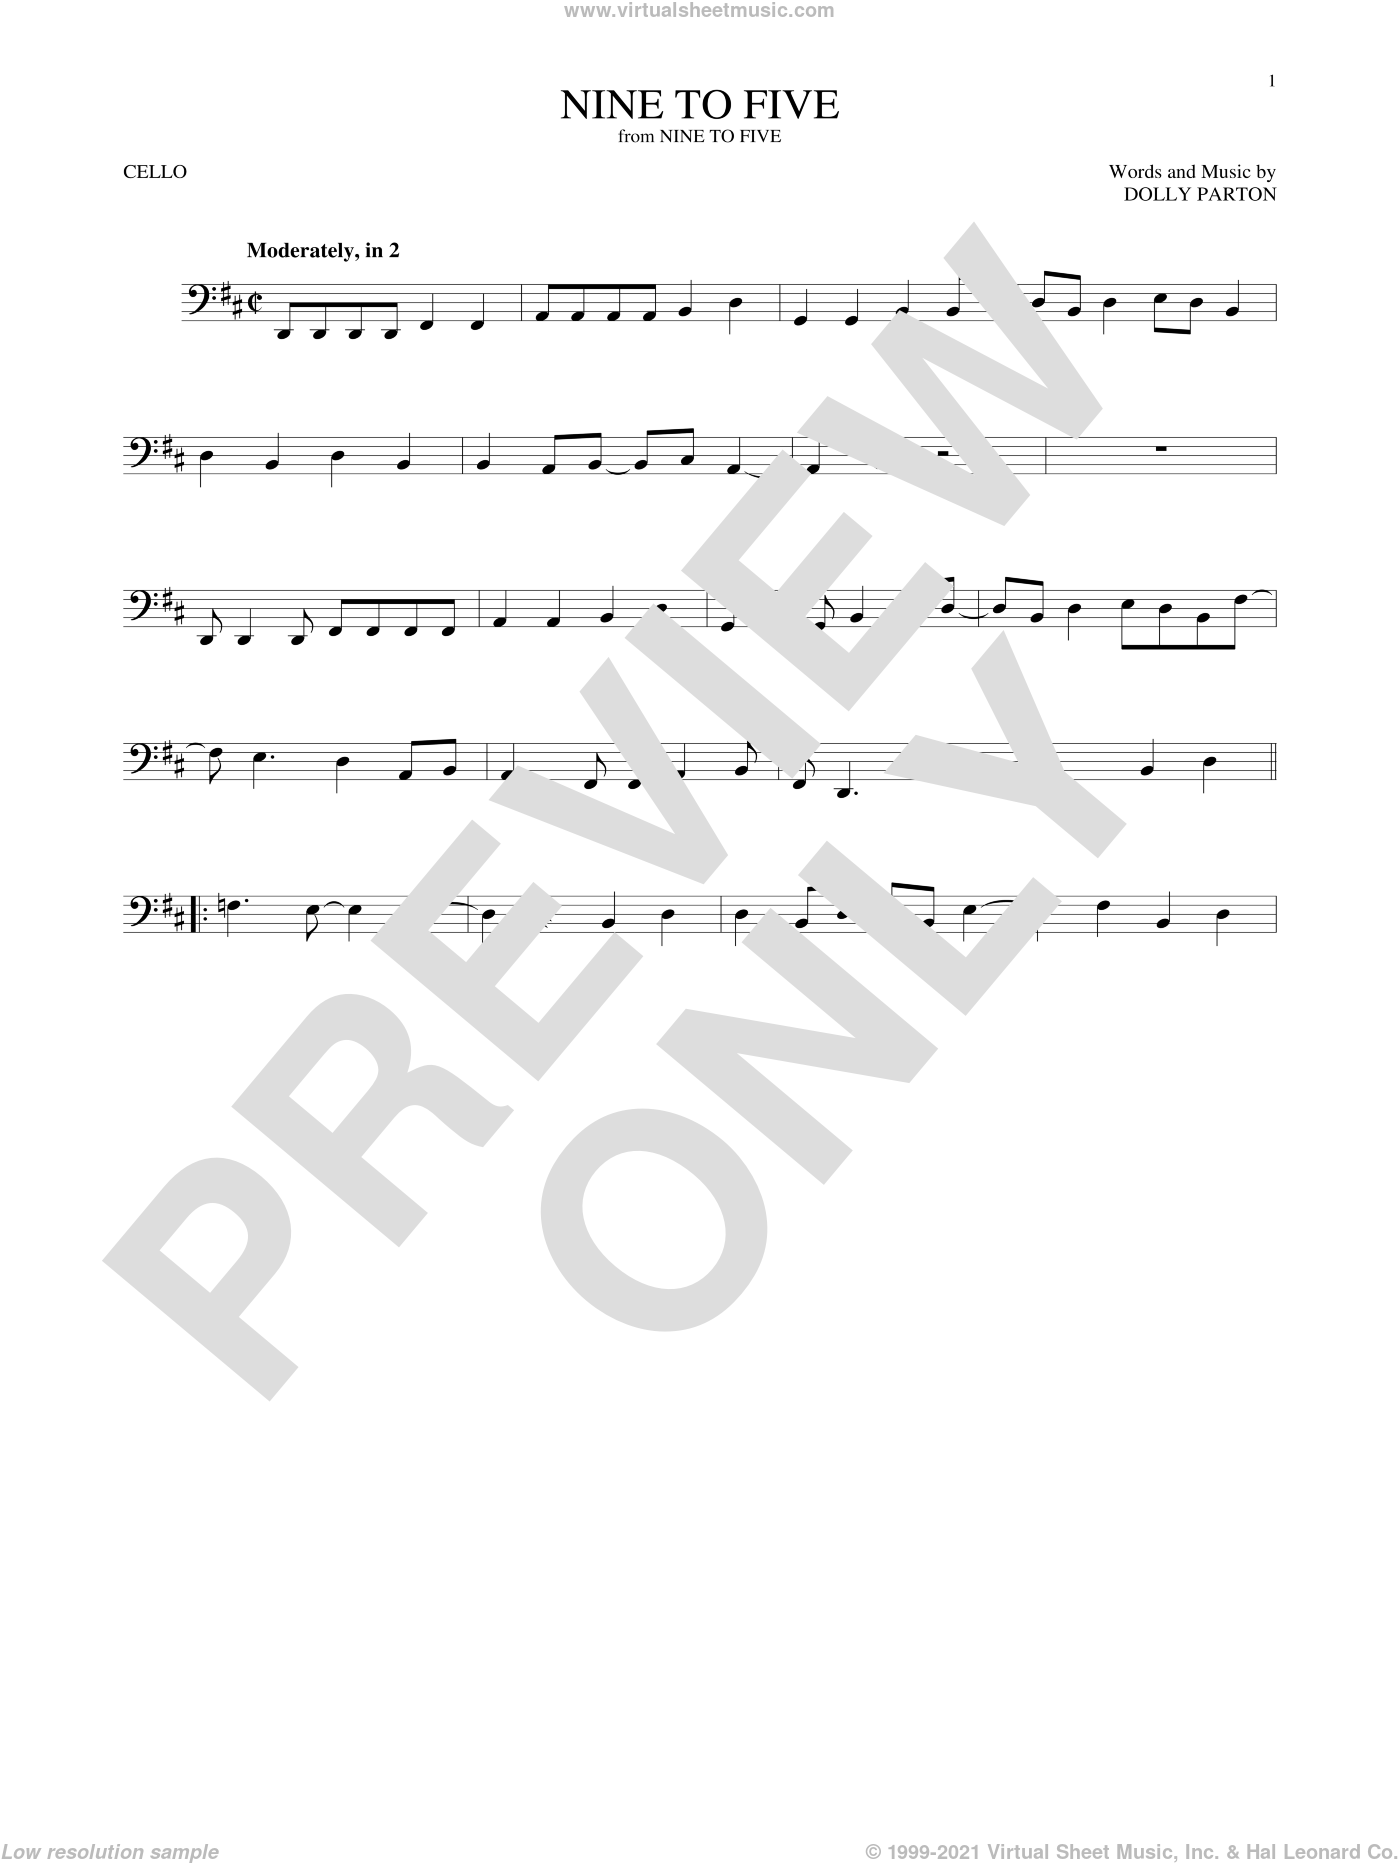 Nine To Five sheet music for cello solo by Dolly Parton, intermediate skill level